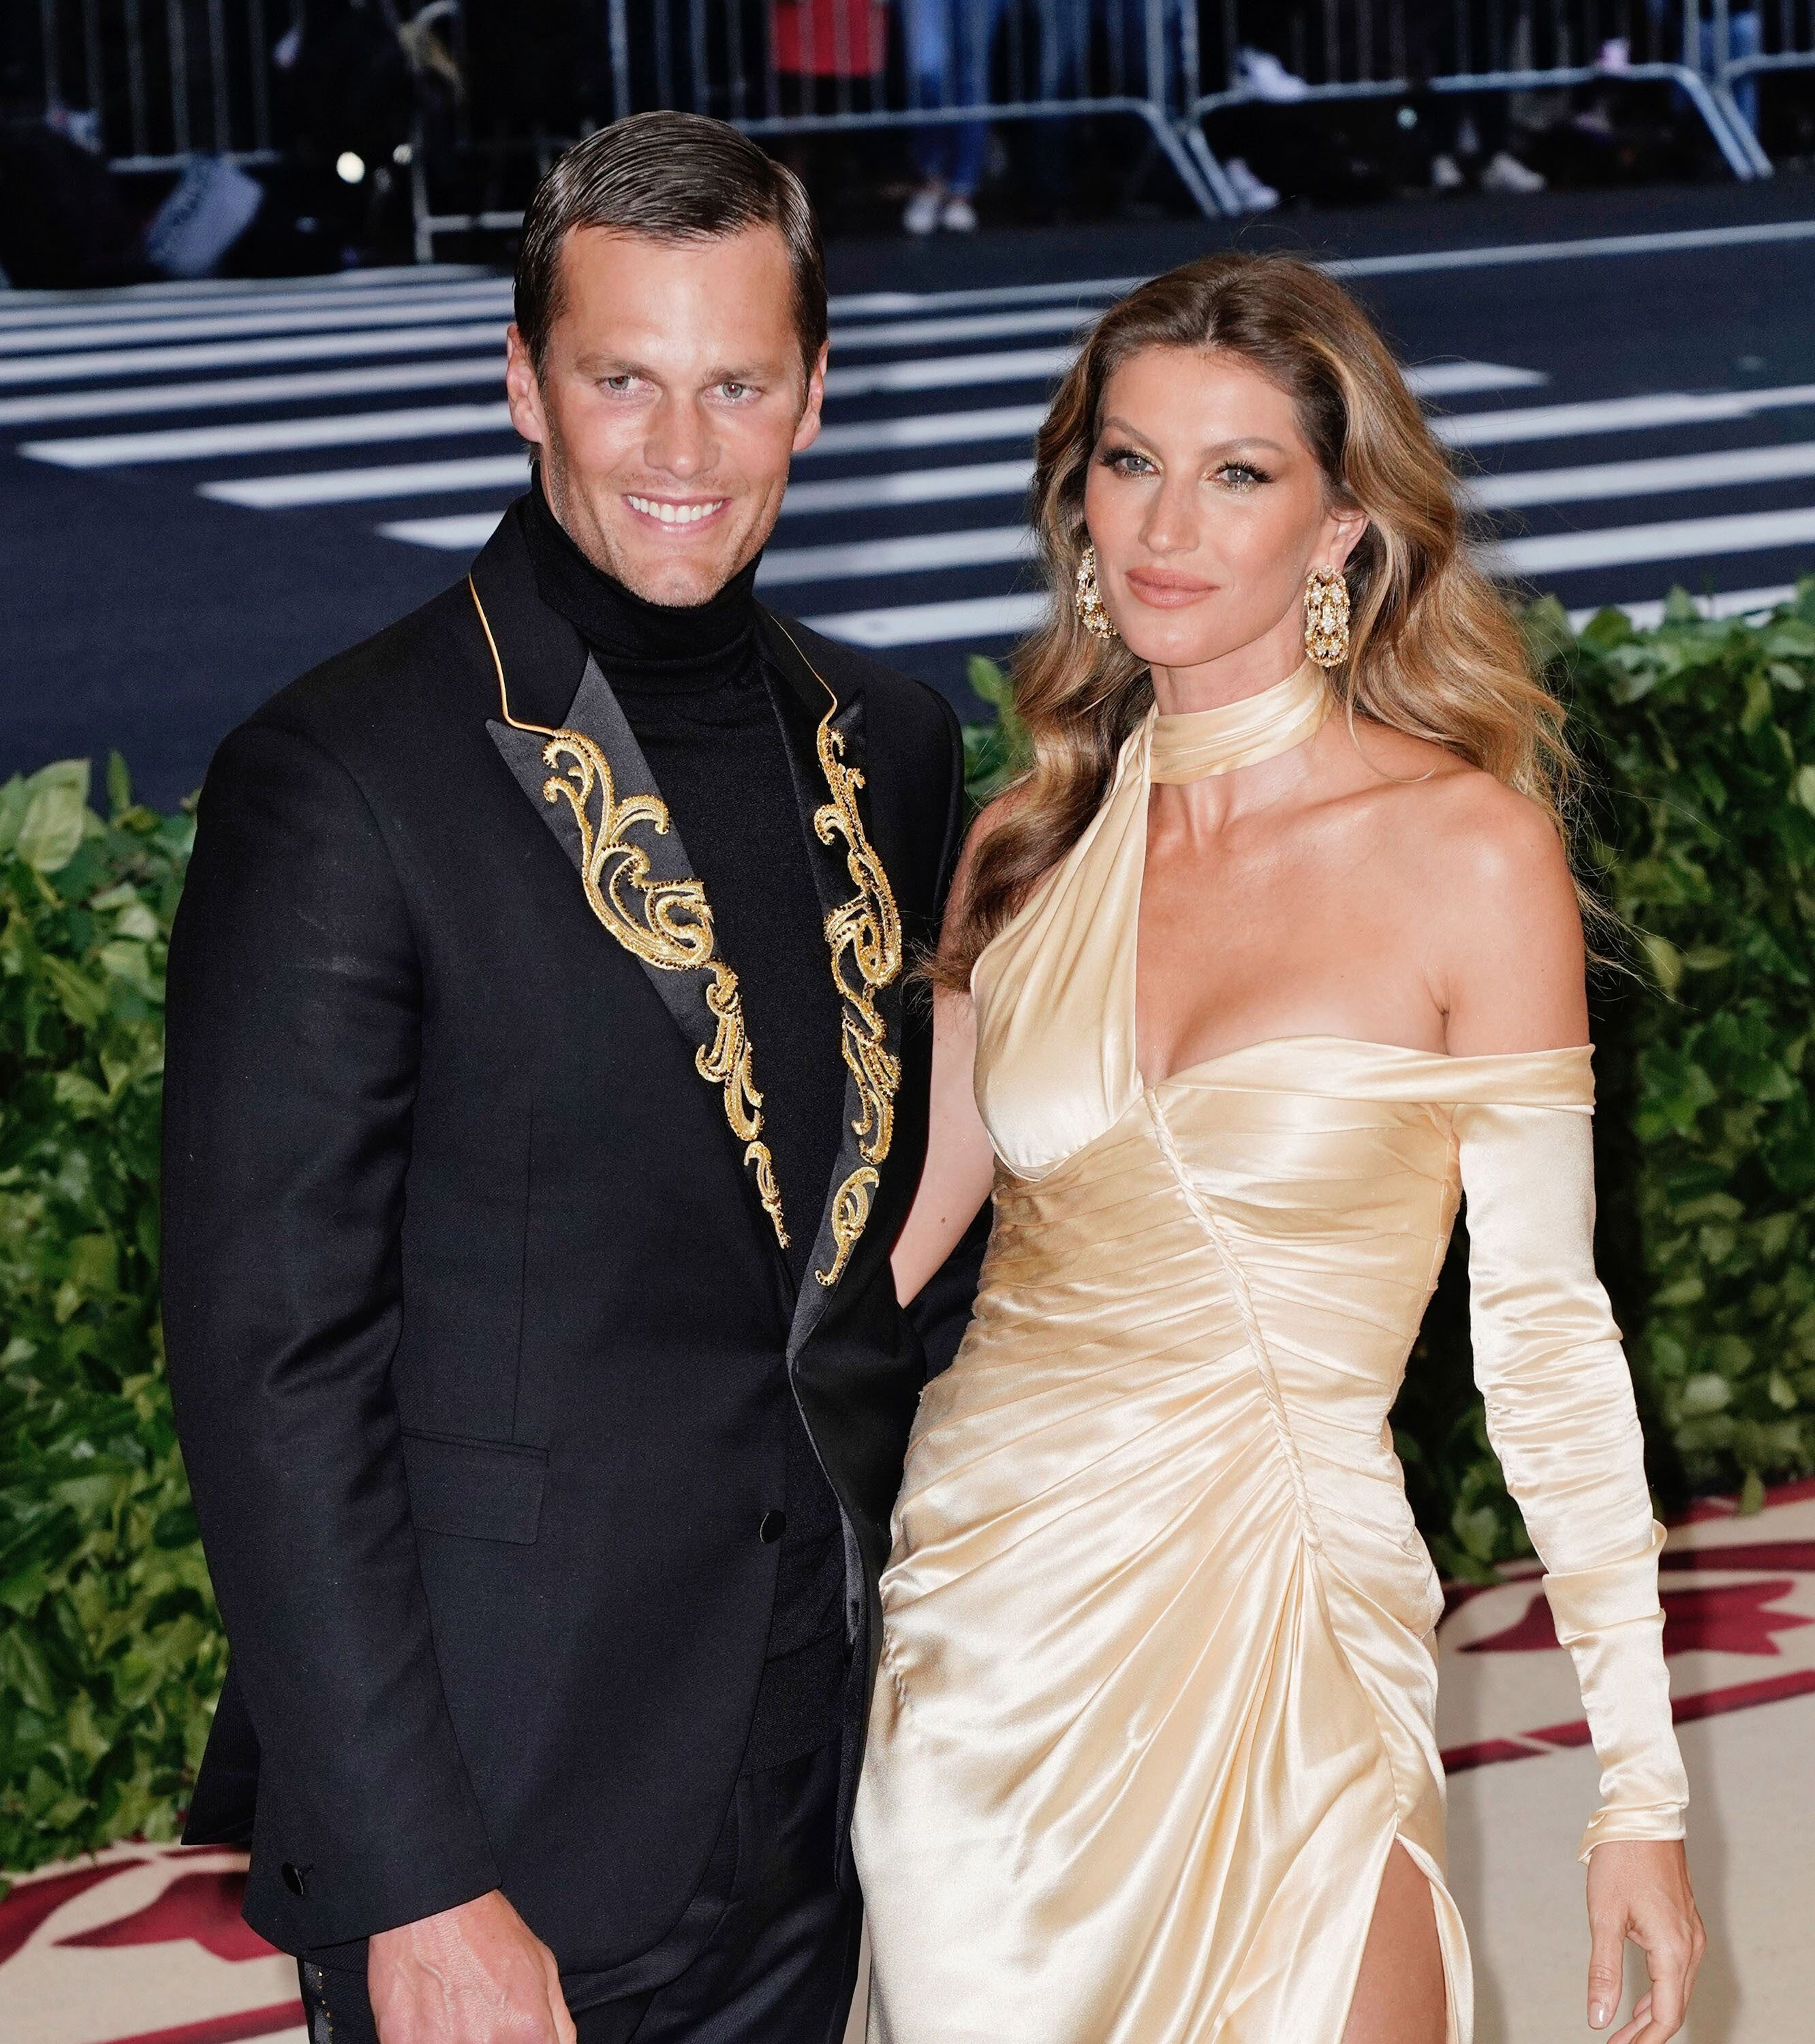 Gisele Bündchen and Tom Brady at the 2018 MET Gala in New York | Photo: Getty Images